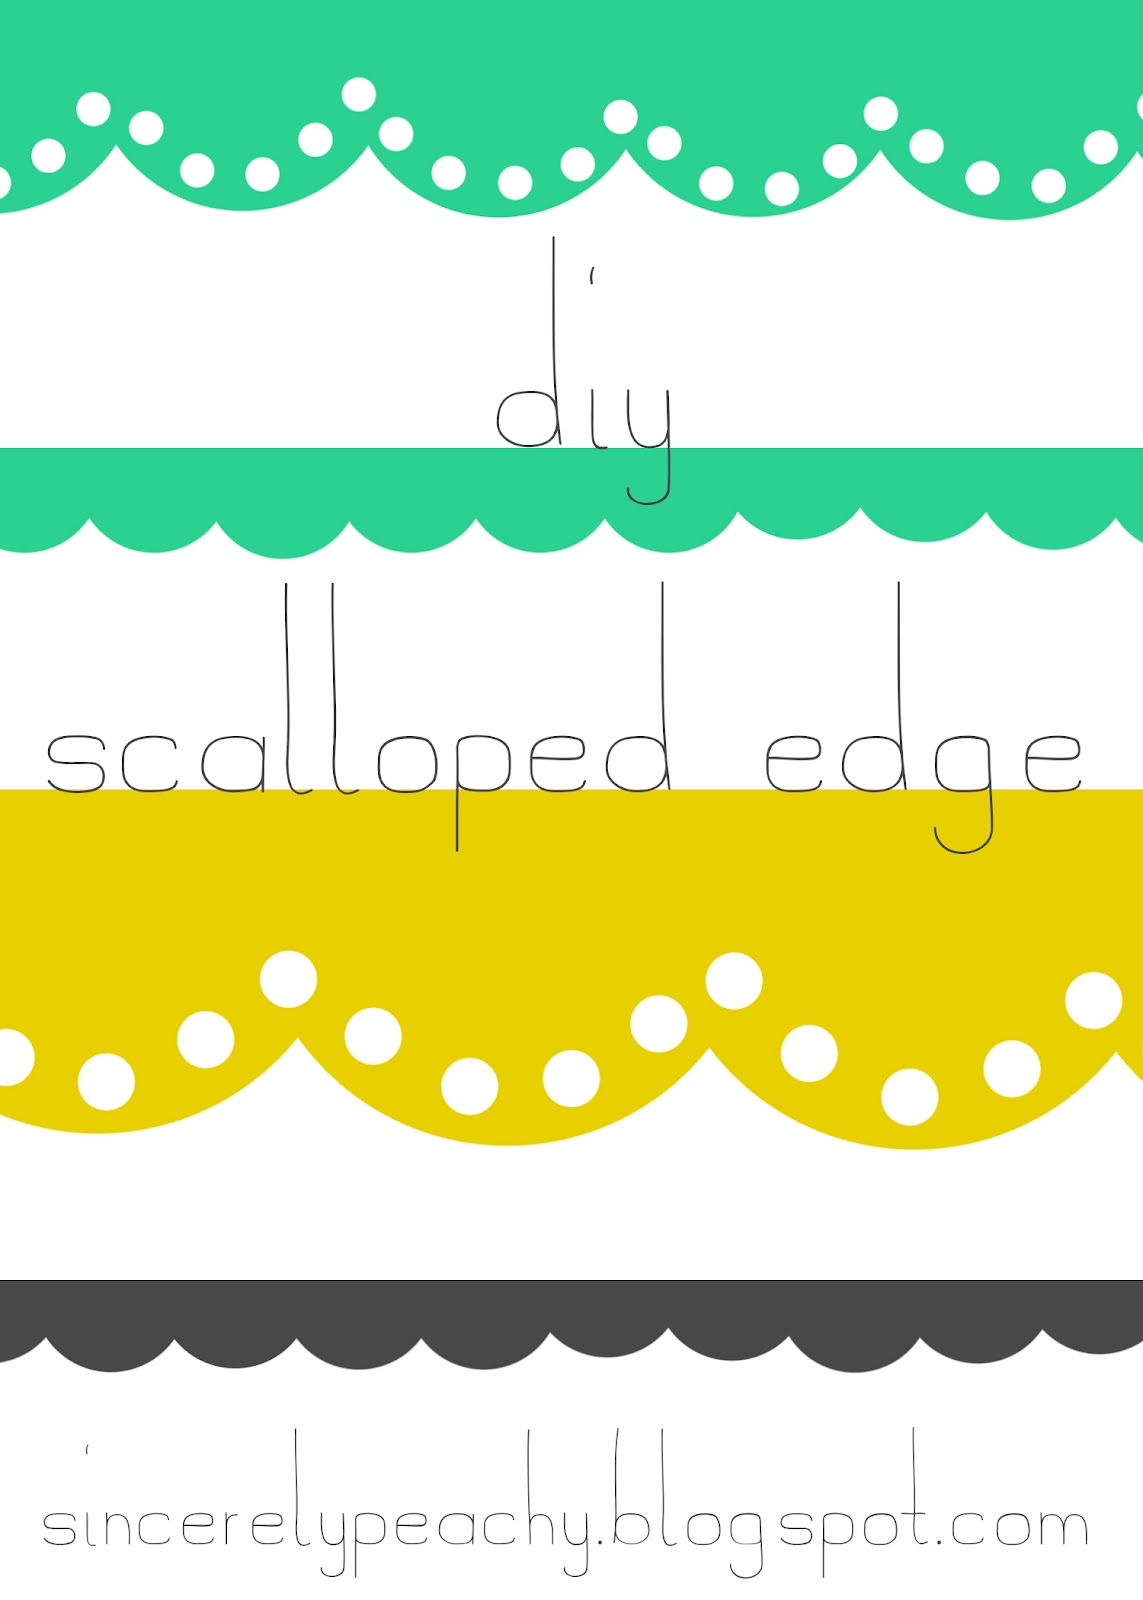 Scallopped edge clipart clipart free download Scalloped Border Clipart | Free download best Scalloped ... clipart free download